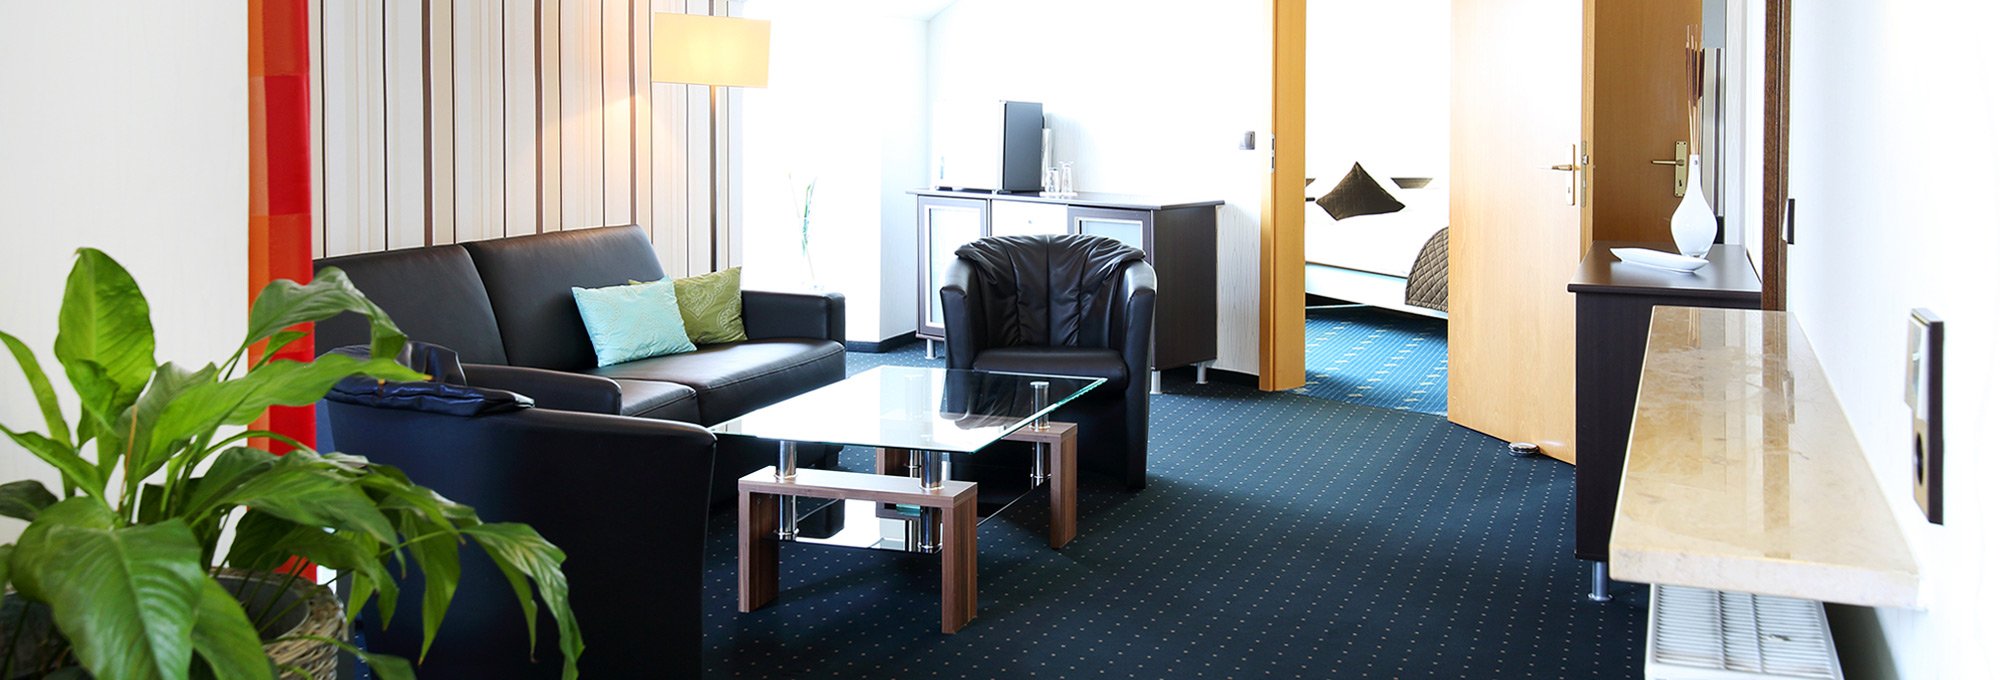 FULLY FURNISHED APARTMENT IN GIENGEN